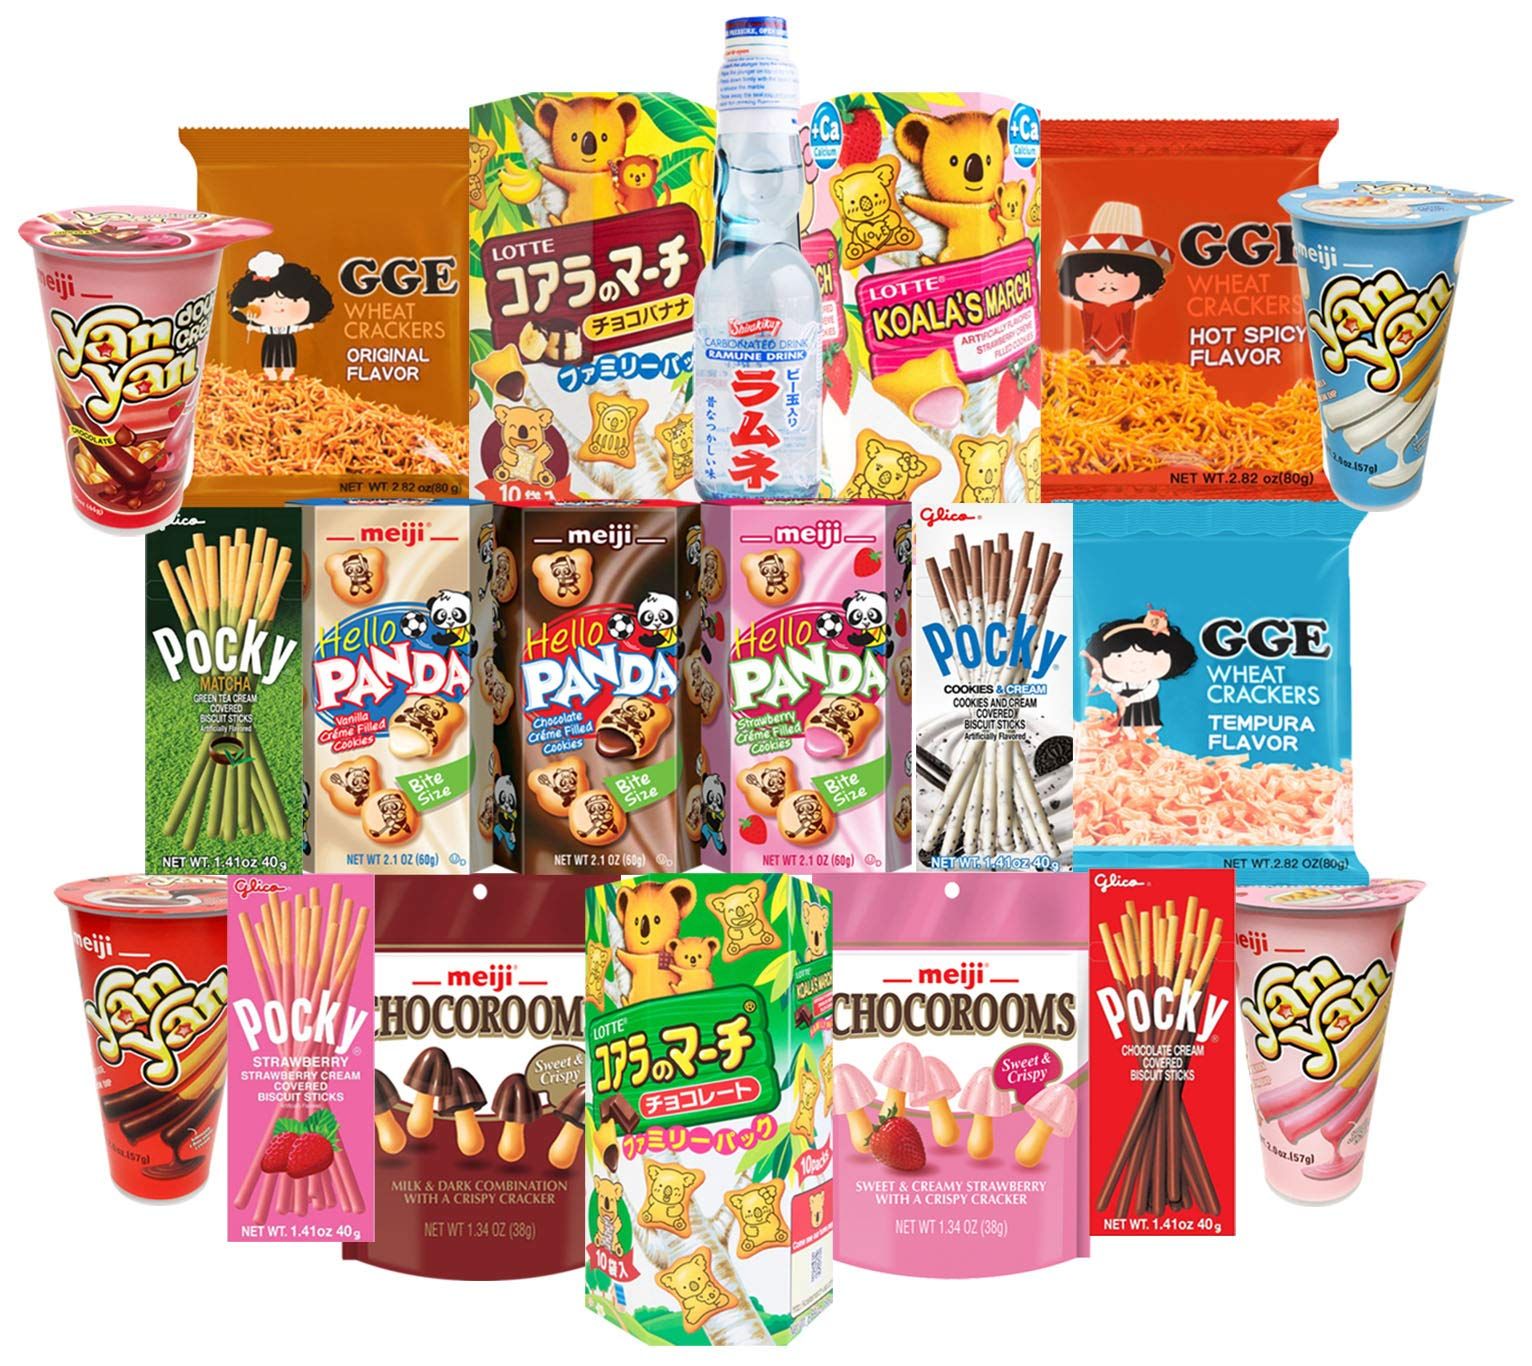 Japanese Snacks and Drinks Care Package Snack Gift Box (30 Count) - Assortment of Pocky Sticks, Yan Yan, Hello Panda, Koala, GGE, Pejoy, Candy, Ramune Soda, ITO EN Matcha Tea - Variety Pack Flavors by Snackscribe